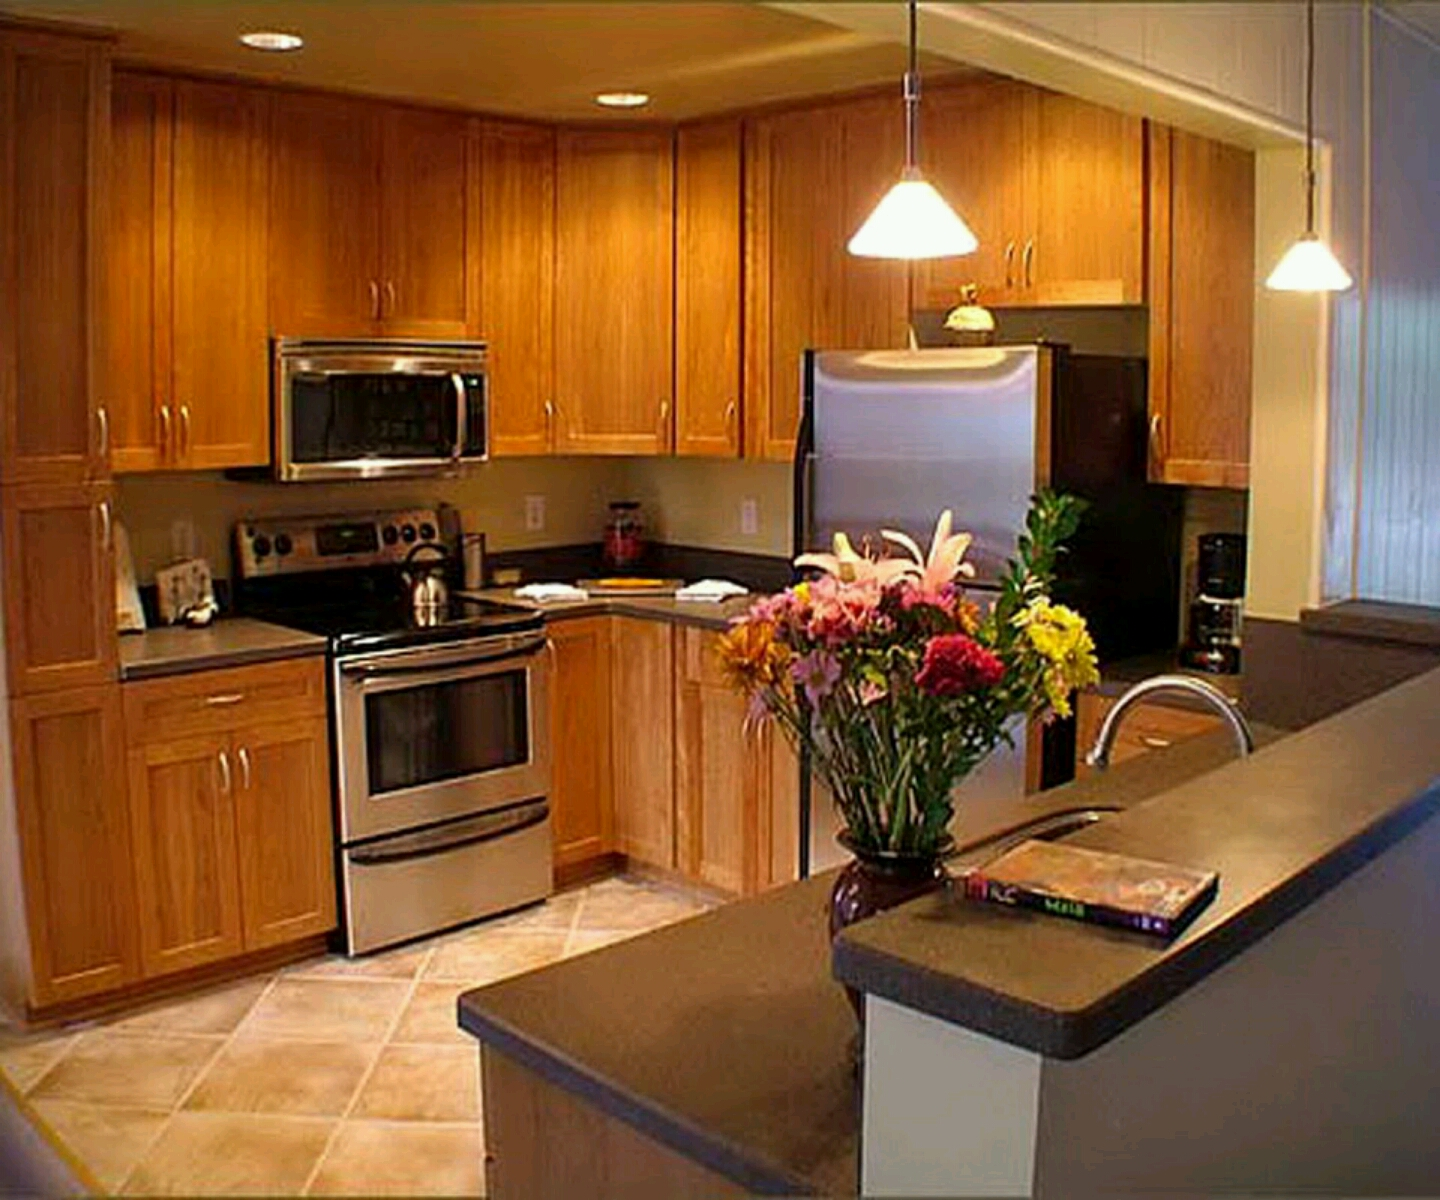 Contemporary wooden kitchen cabinets bill house plans for Kitchen wood design